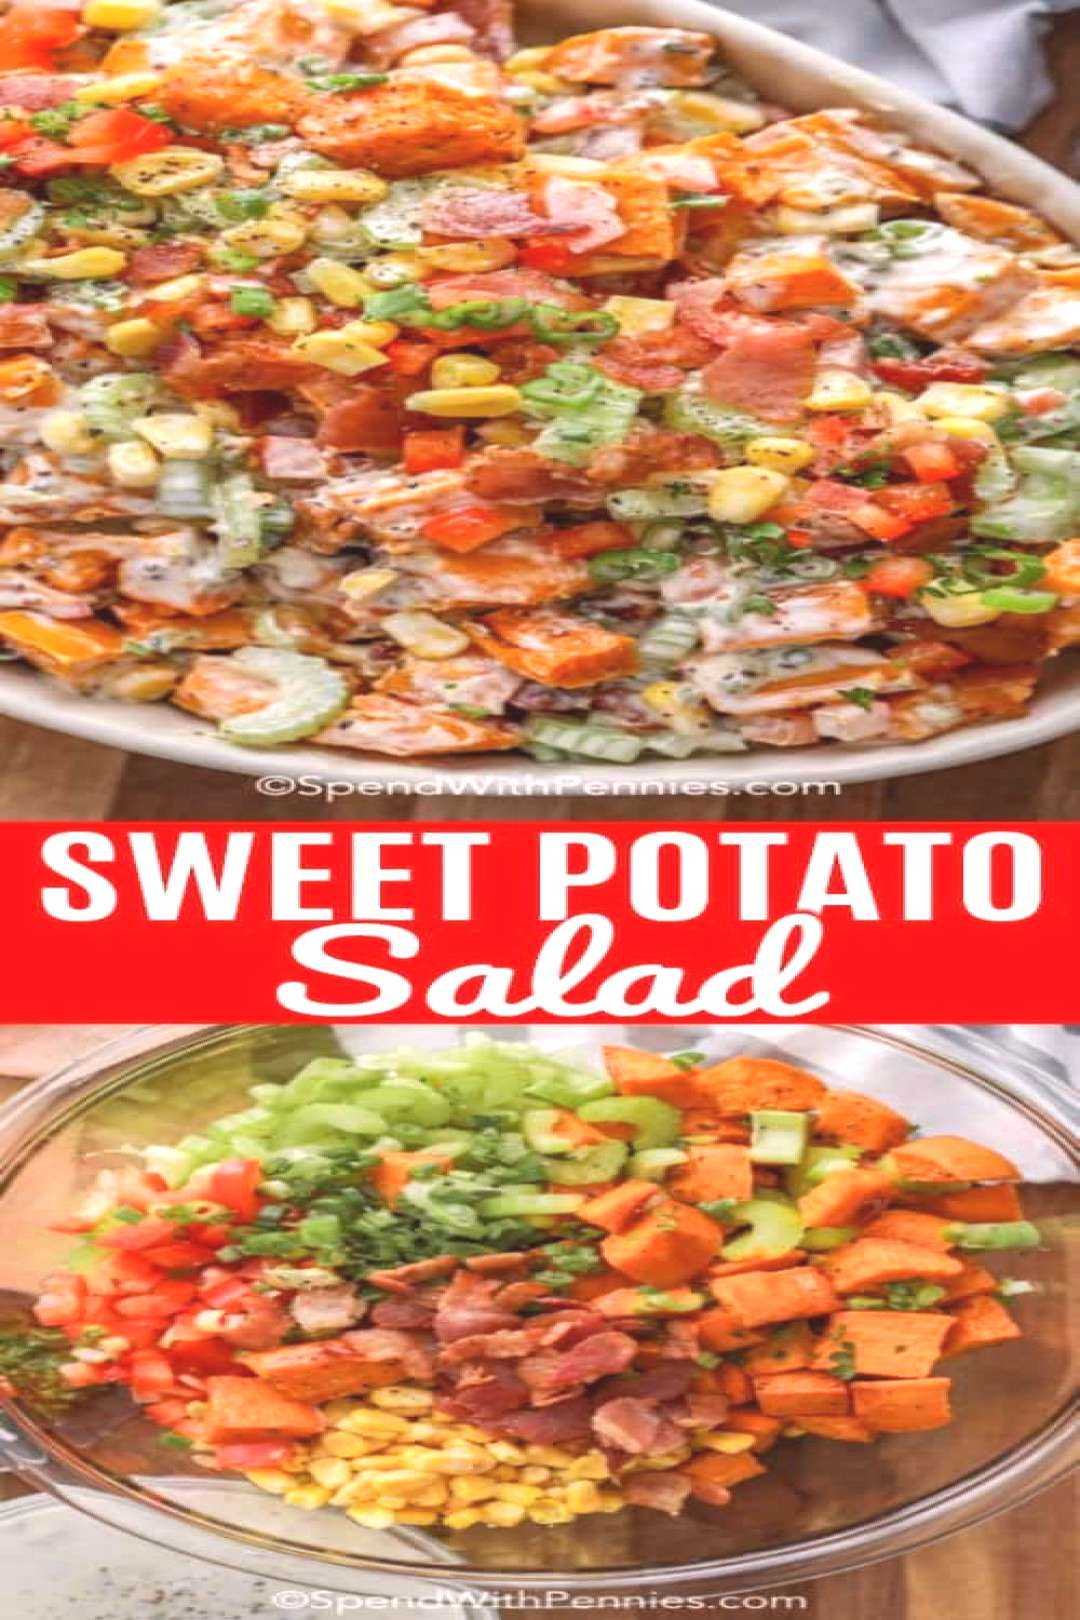 Sweet Potato Salad Potluck Fav! - Spend With Pennies,Roasted sweet potato salad is the perf... Sw